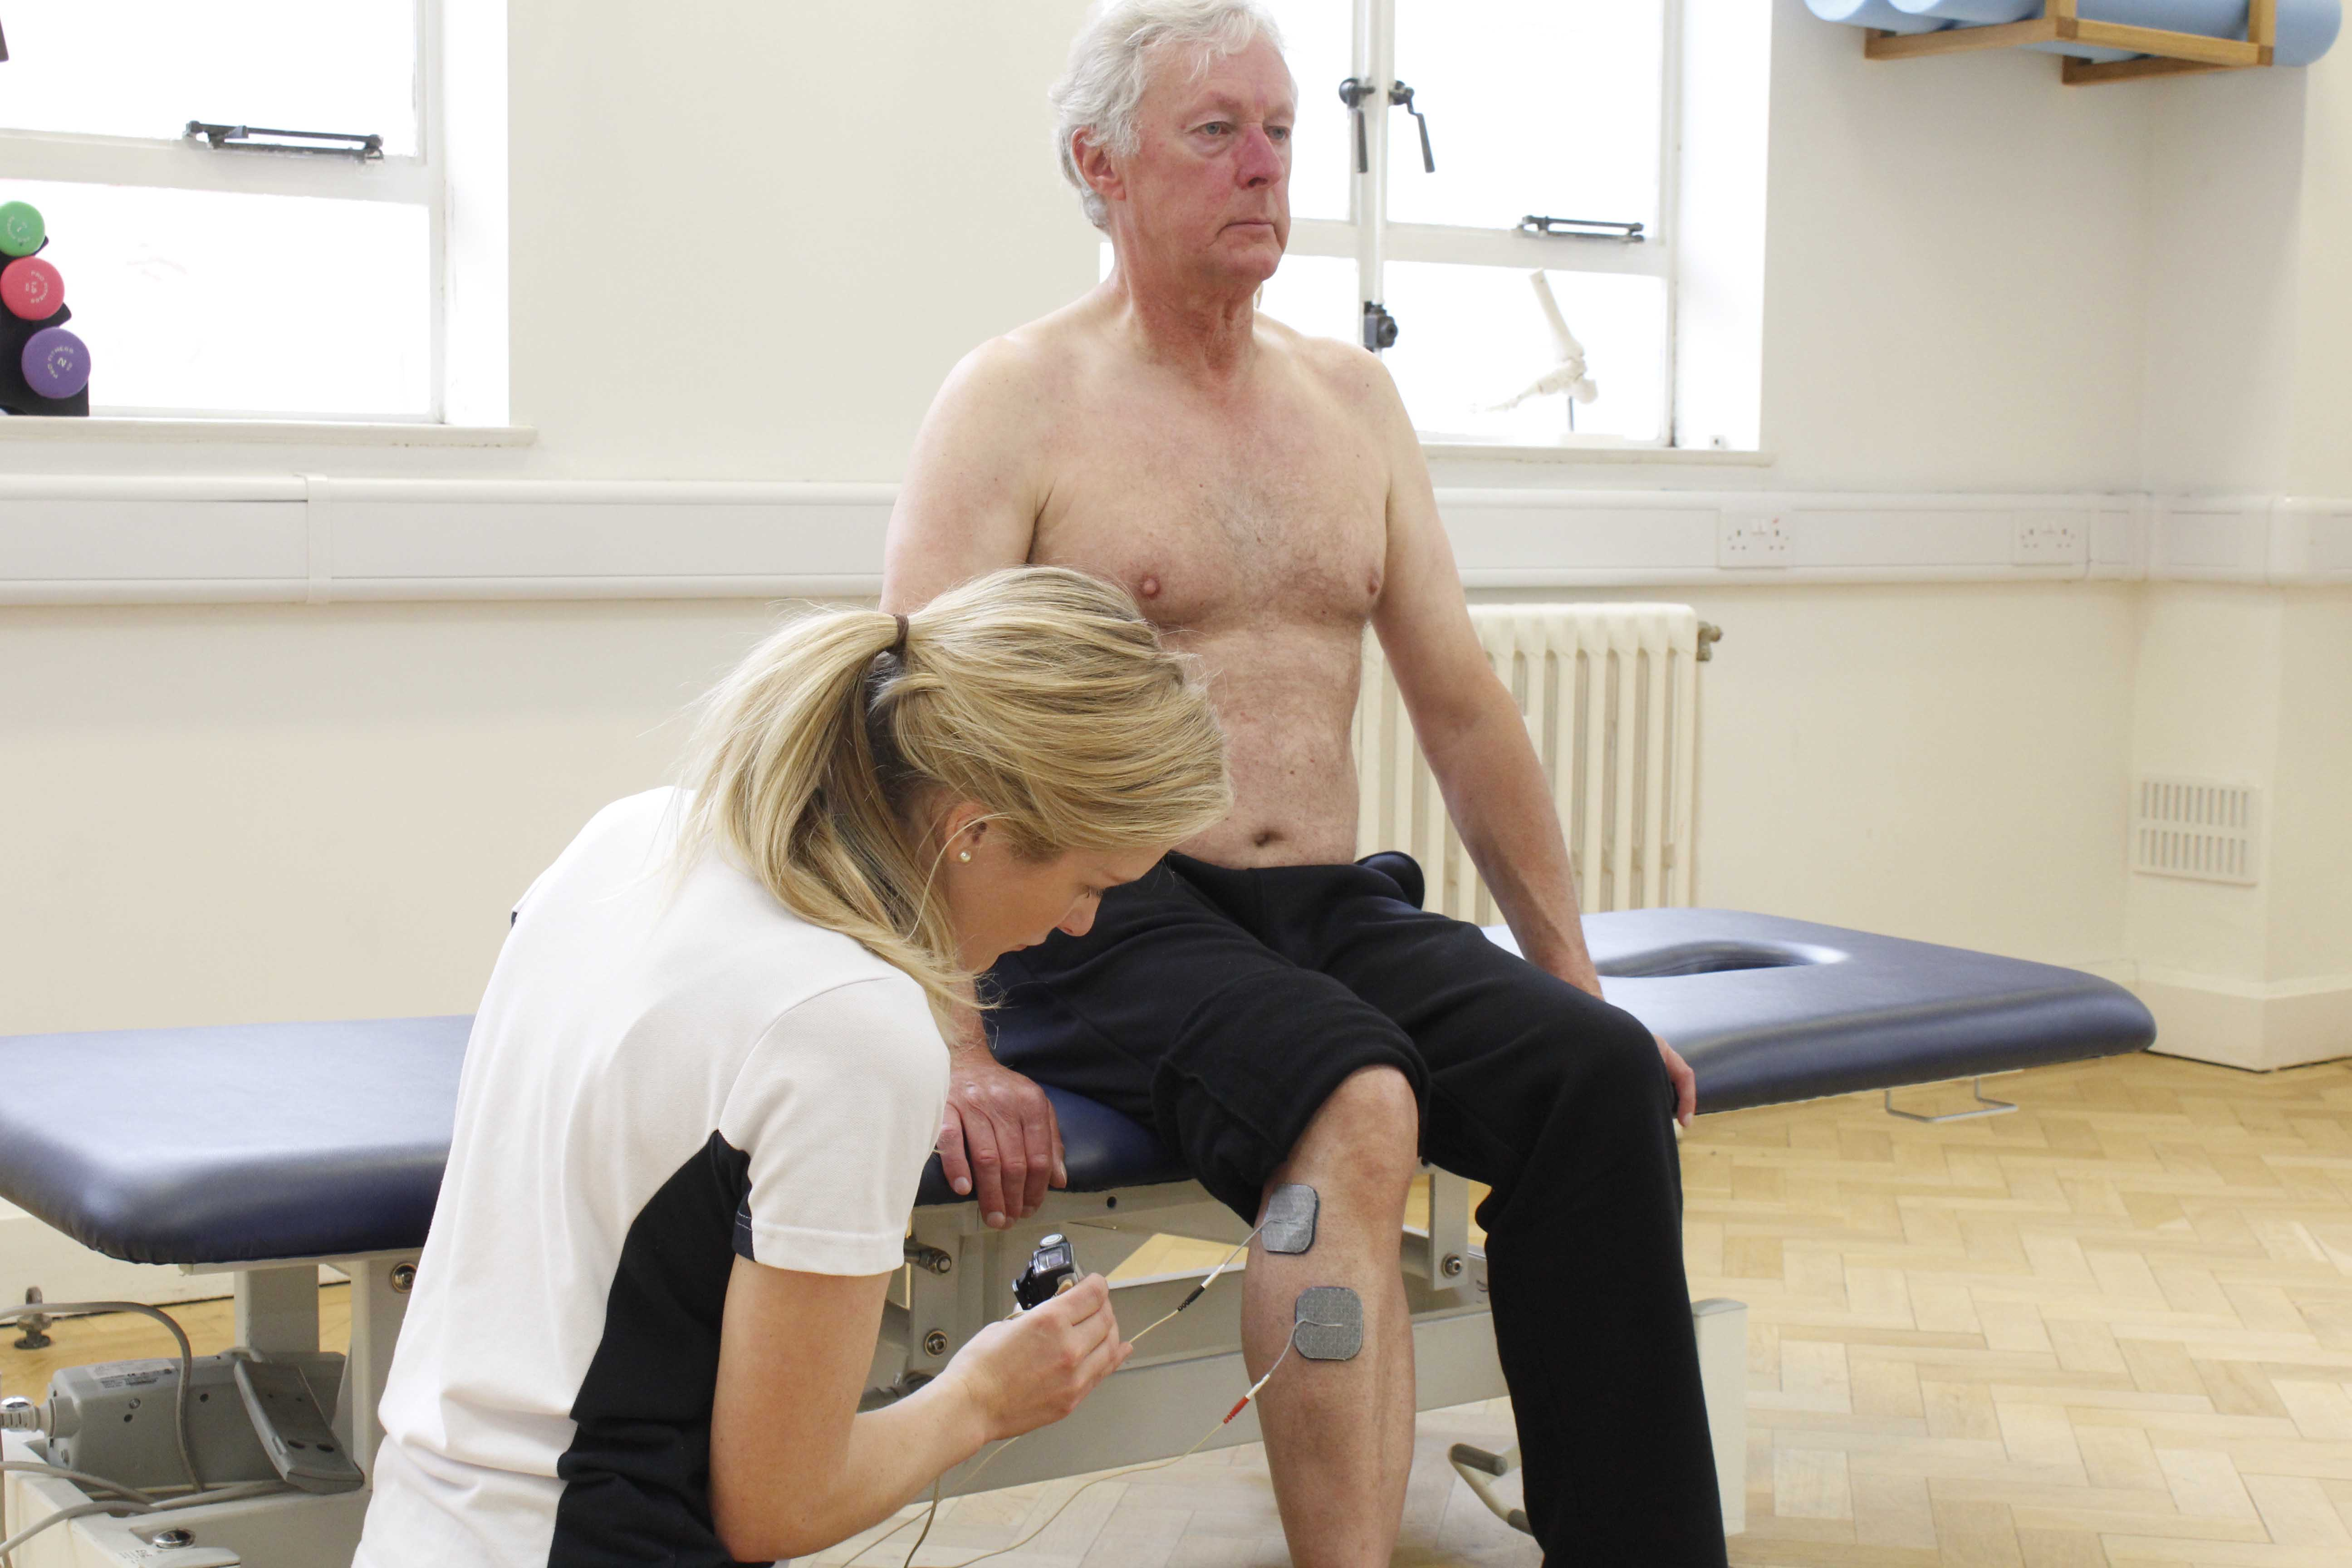 Mobilisations of the lumber spine by an experienced physiotherapist